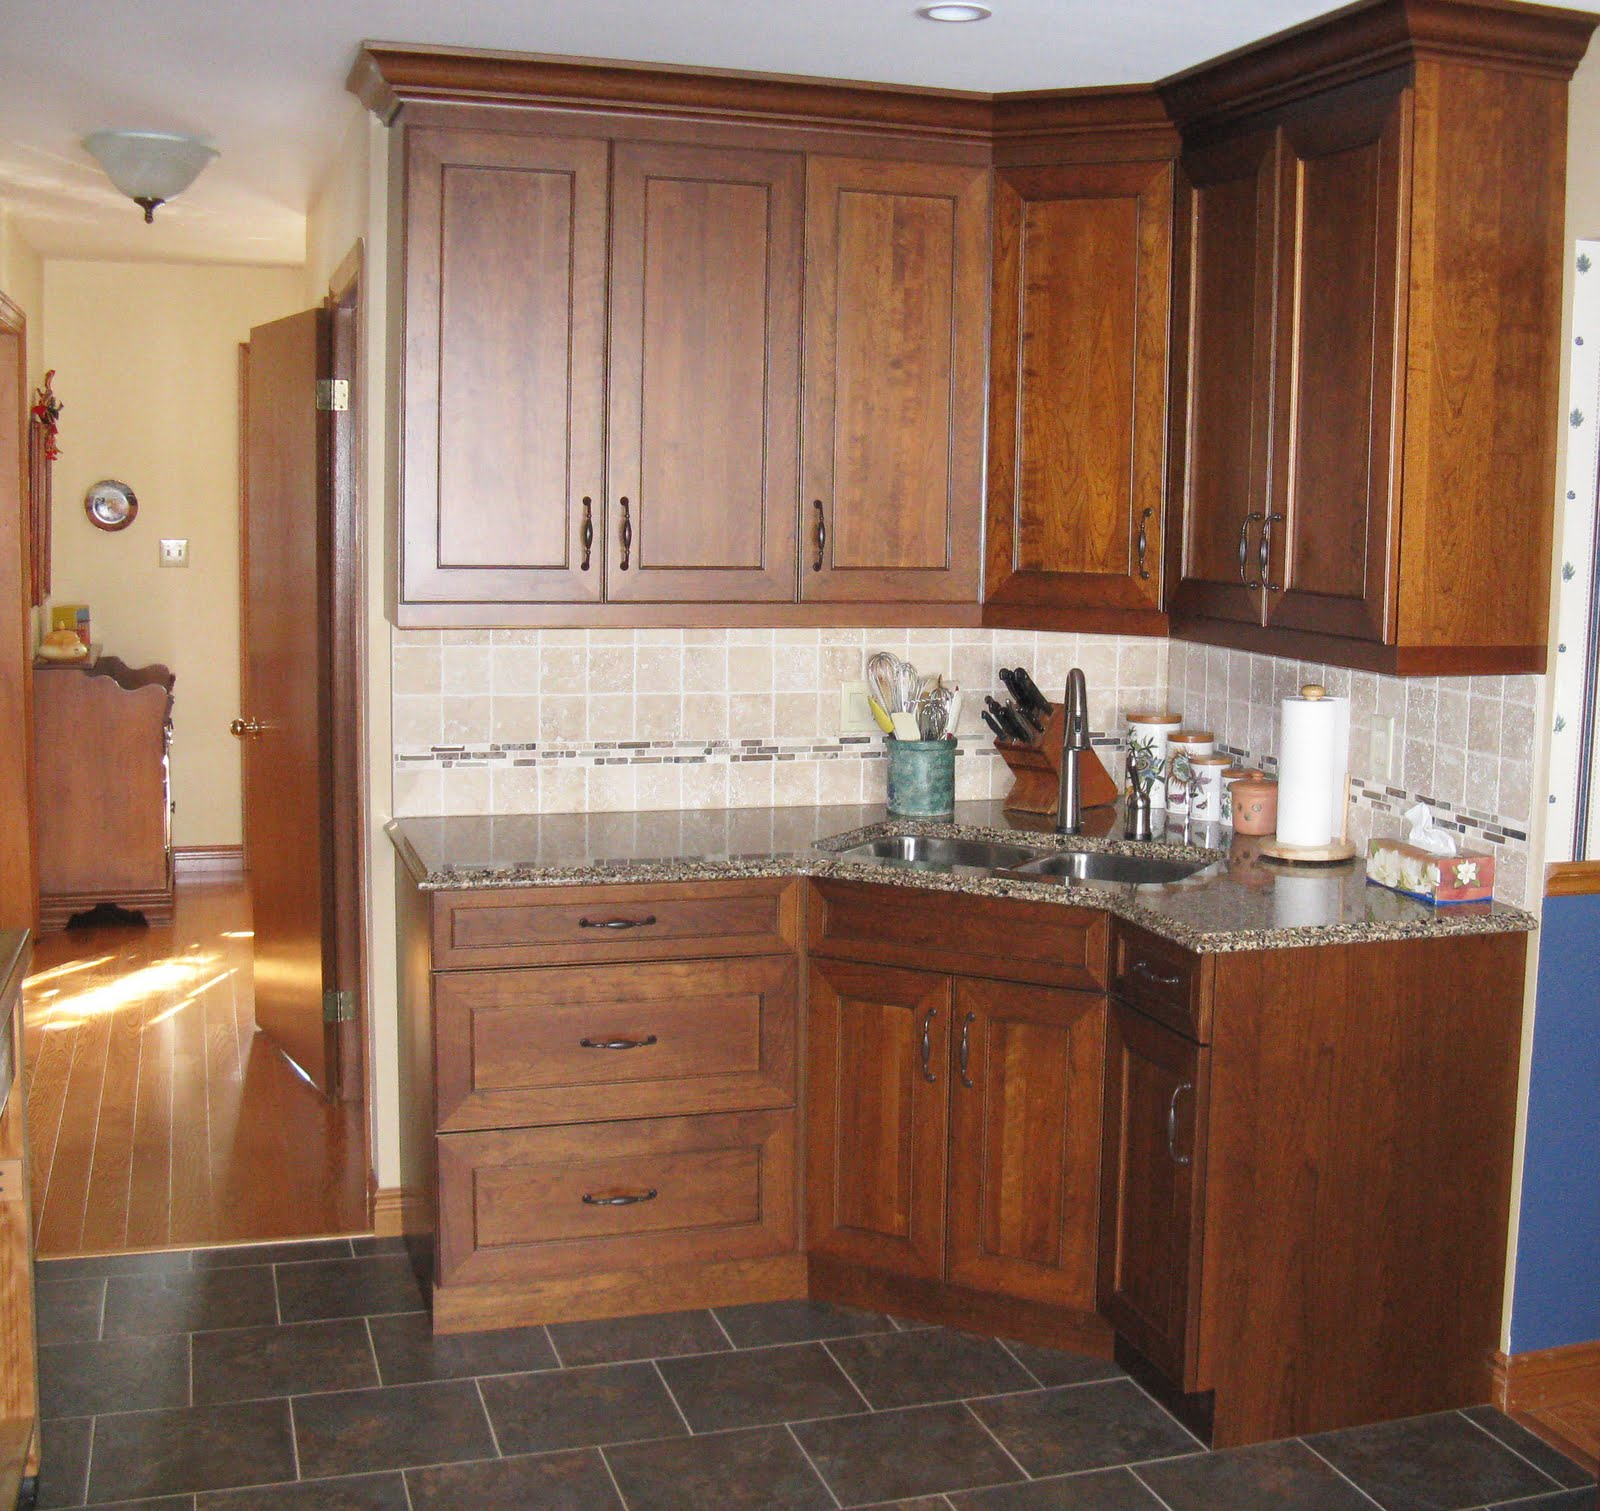 Kitchen Backsplash Cherry Cabinets: FIVE STAR PHOTO GALLERY: Cherry Cabinets